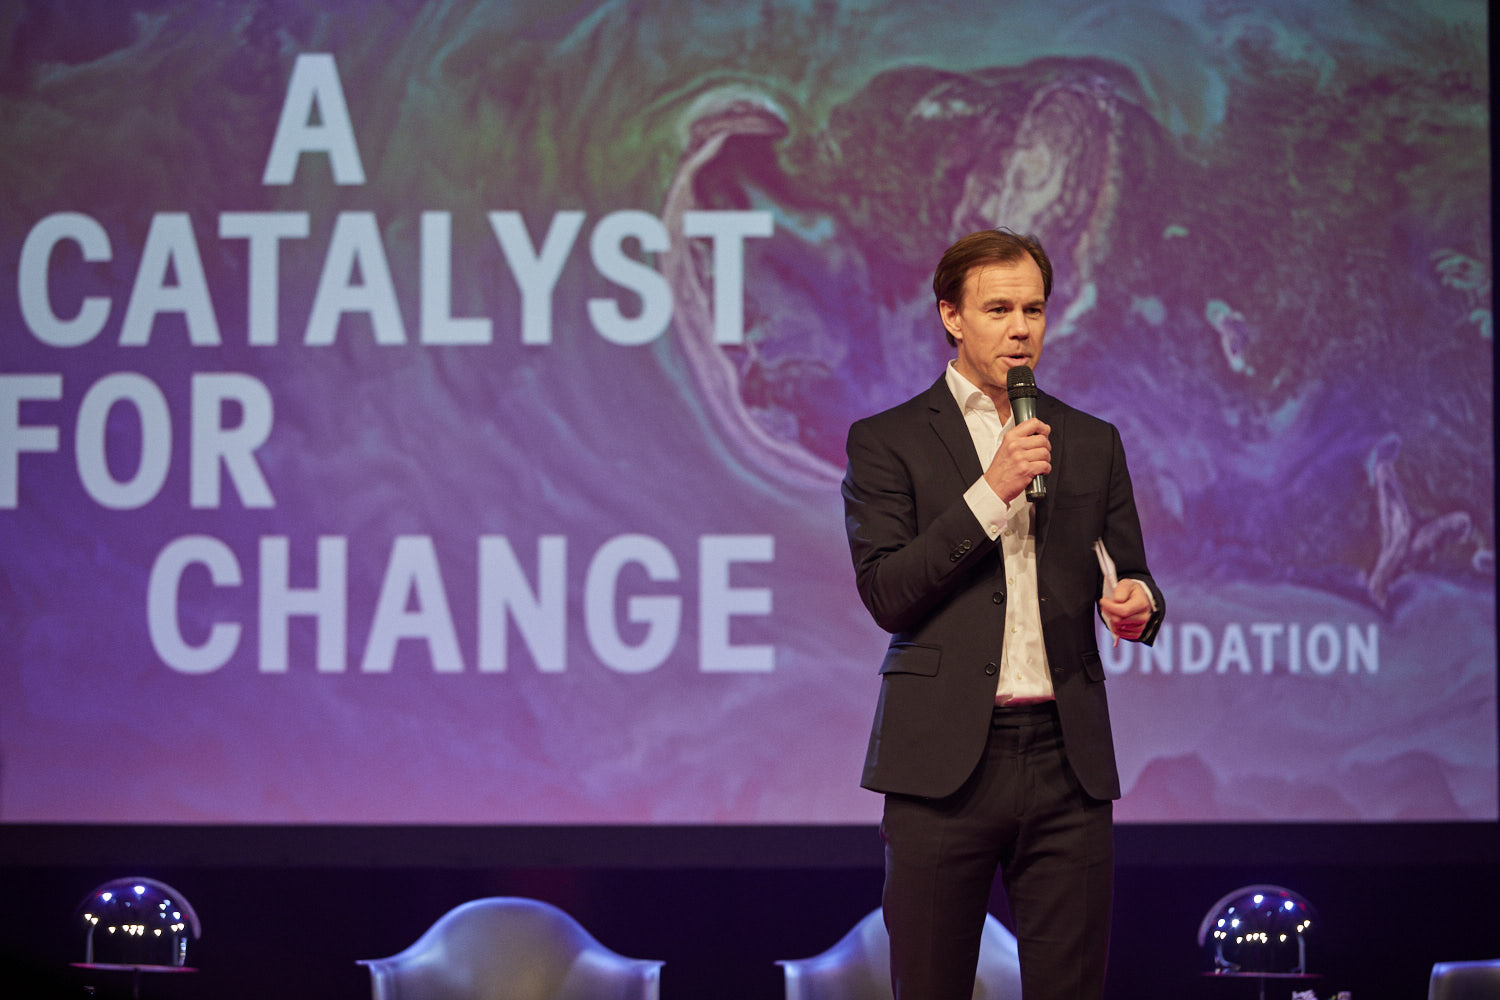 agraloop-global-change-award-ceremony1.jpg